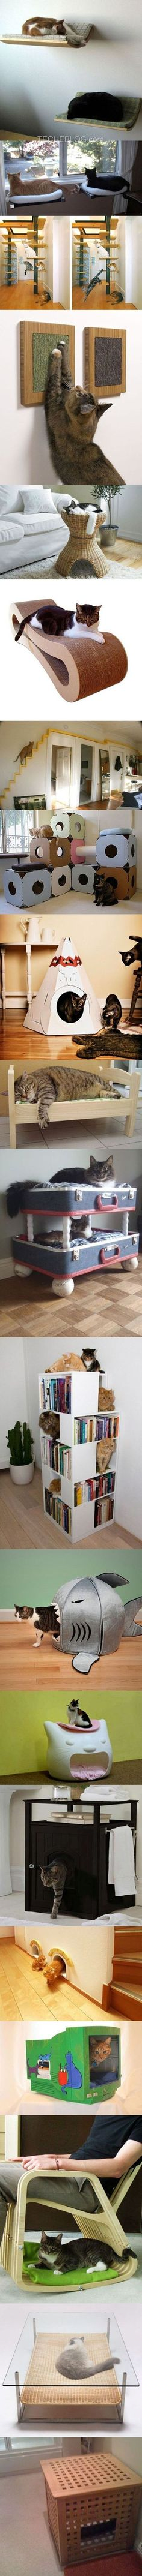 Here are twenty fun and geeky furniture designs for cats. I like the bookshelf.but with fewer cats. I Love Cats, Crazy Cats, Cool Cats, Photo Chat, Cat Room, Pet Furniture, Furniture Ideas, Diy Stuffed Animals, Cat Life